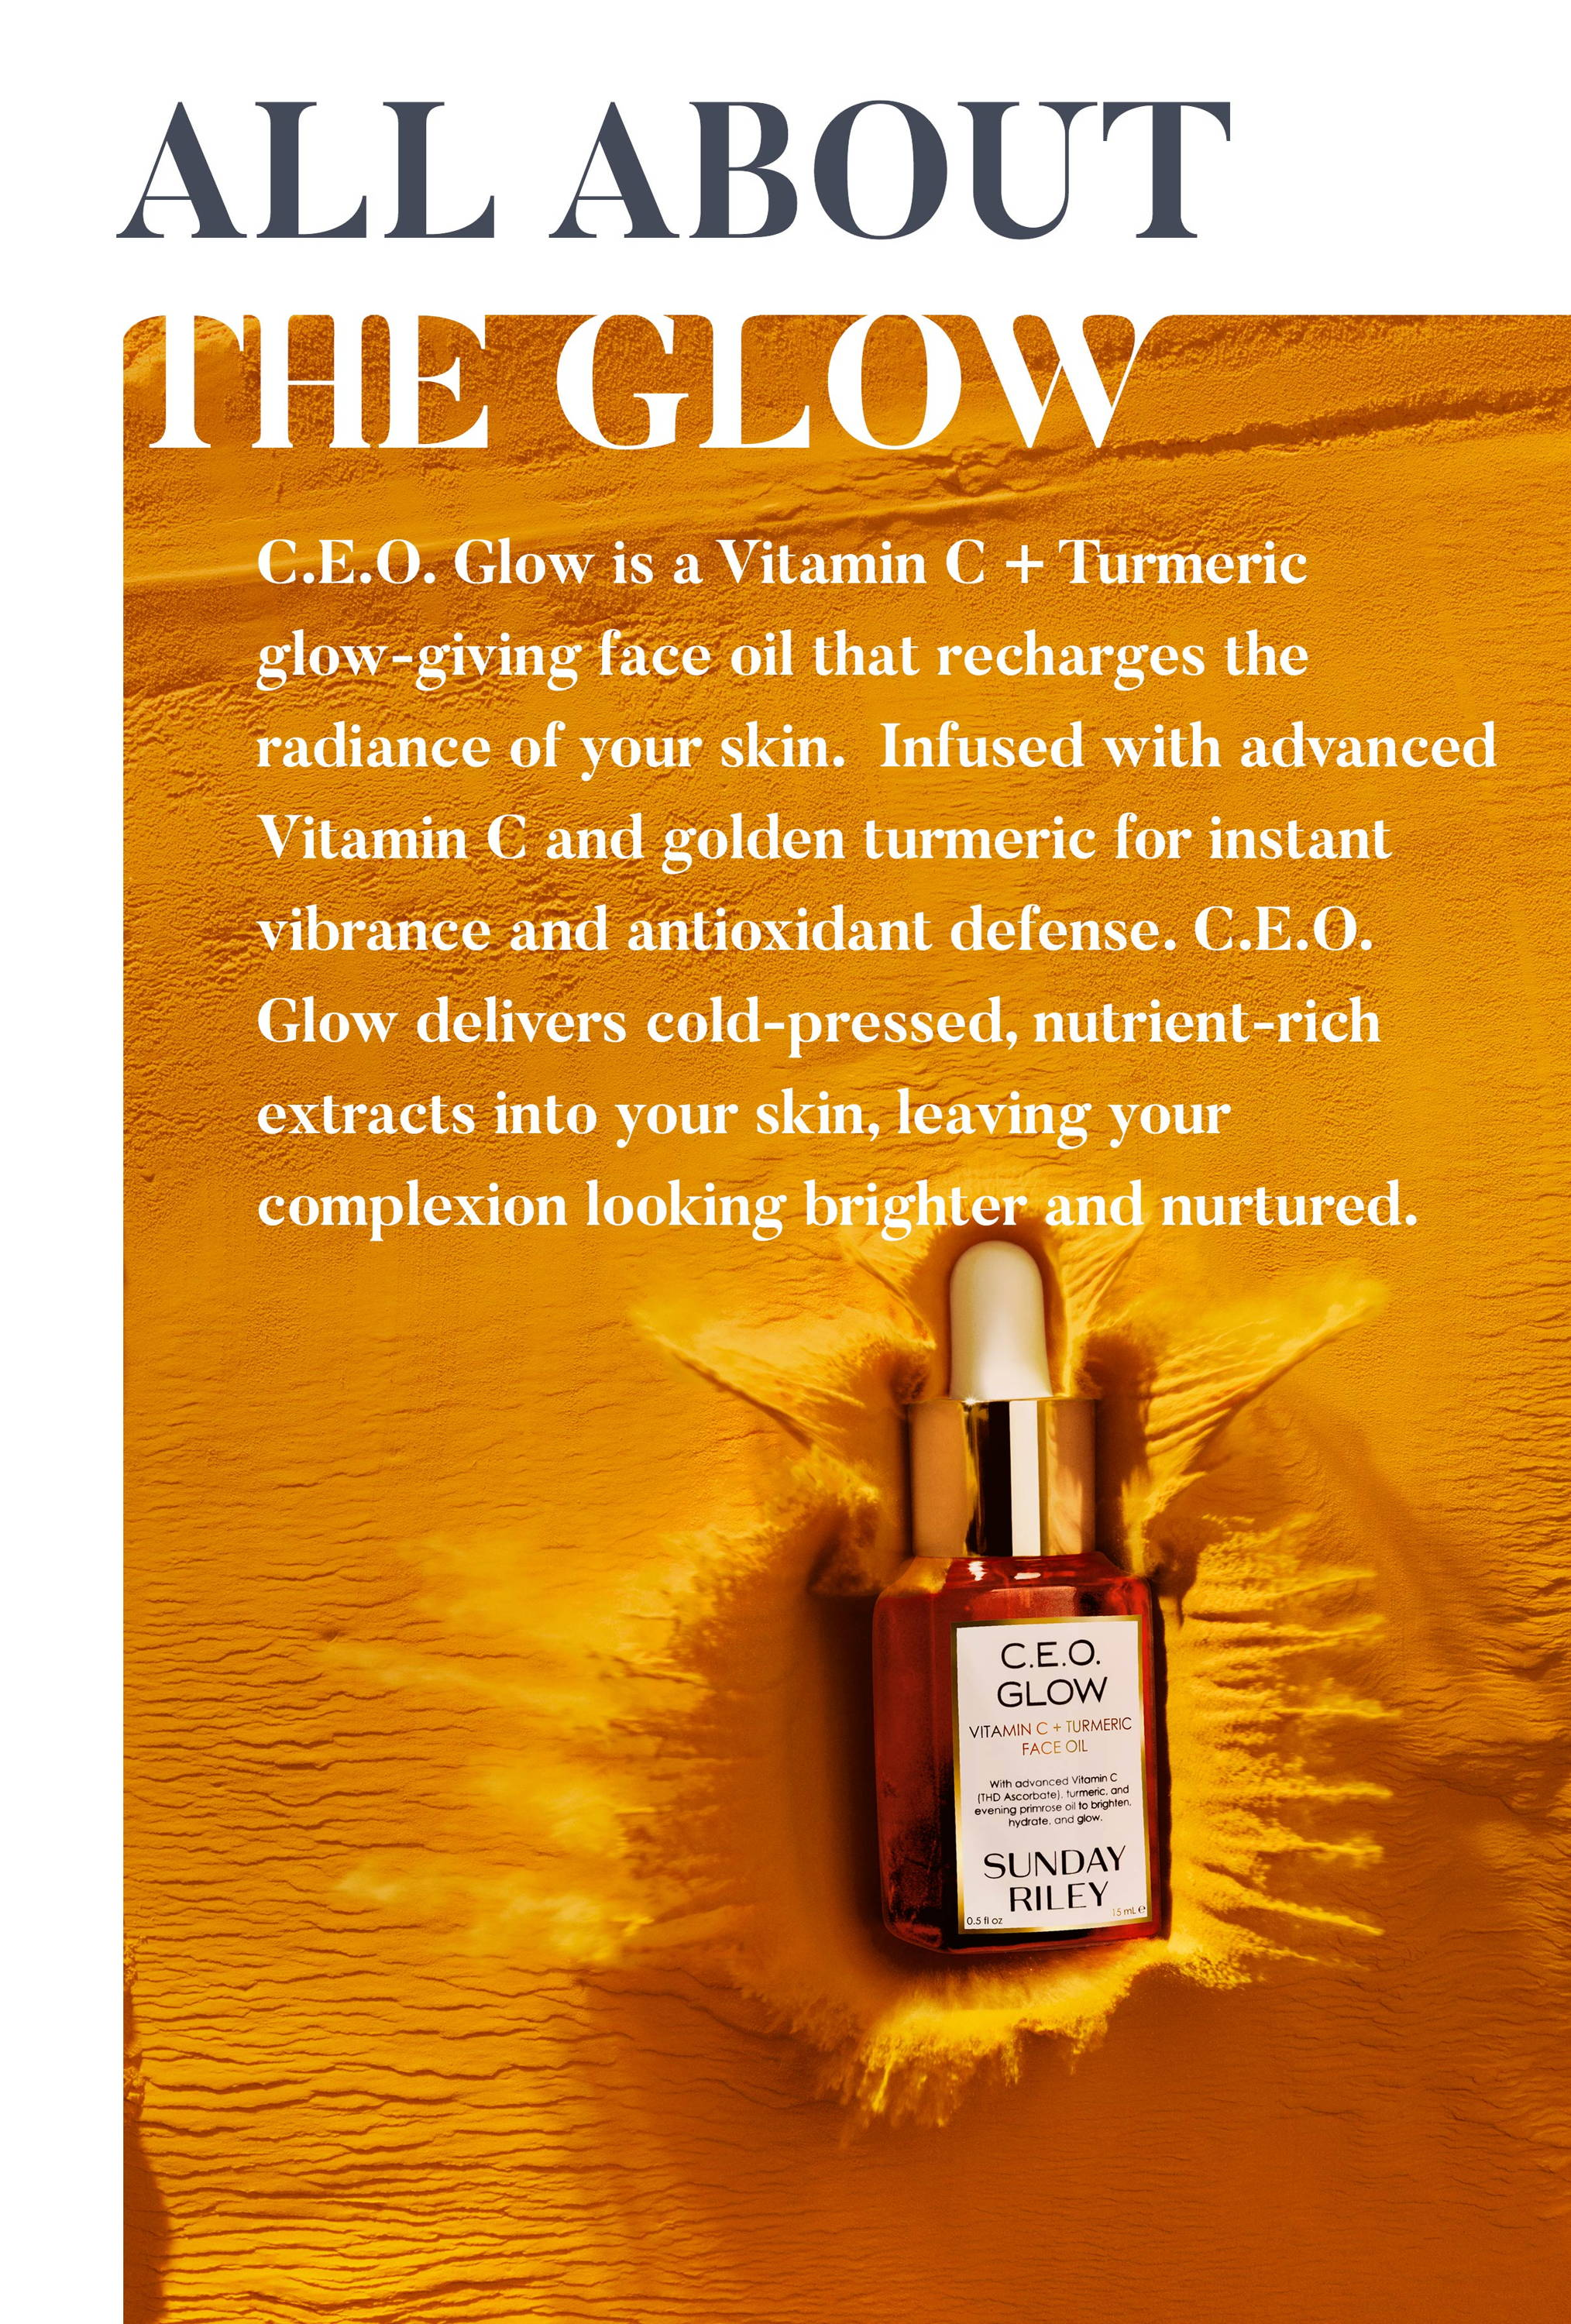 All About The Glow. C.E.O. Glow is a Vitamin C and turmeric glow-giving face oil that recharges the radiance of your skin with its advanced Vitamin C formula, derived from THD ascorbate (one of the most potent forms of vitamin C). Full of antioxidants and soothing vitamin E, C.E.O. Glow delivers cold-pressed superfoods to the deepest layers, leaving your skin l brightened  and nourished.